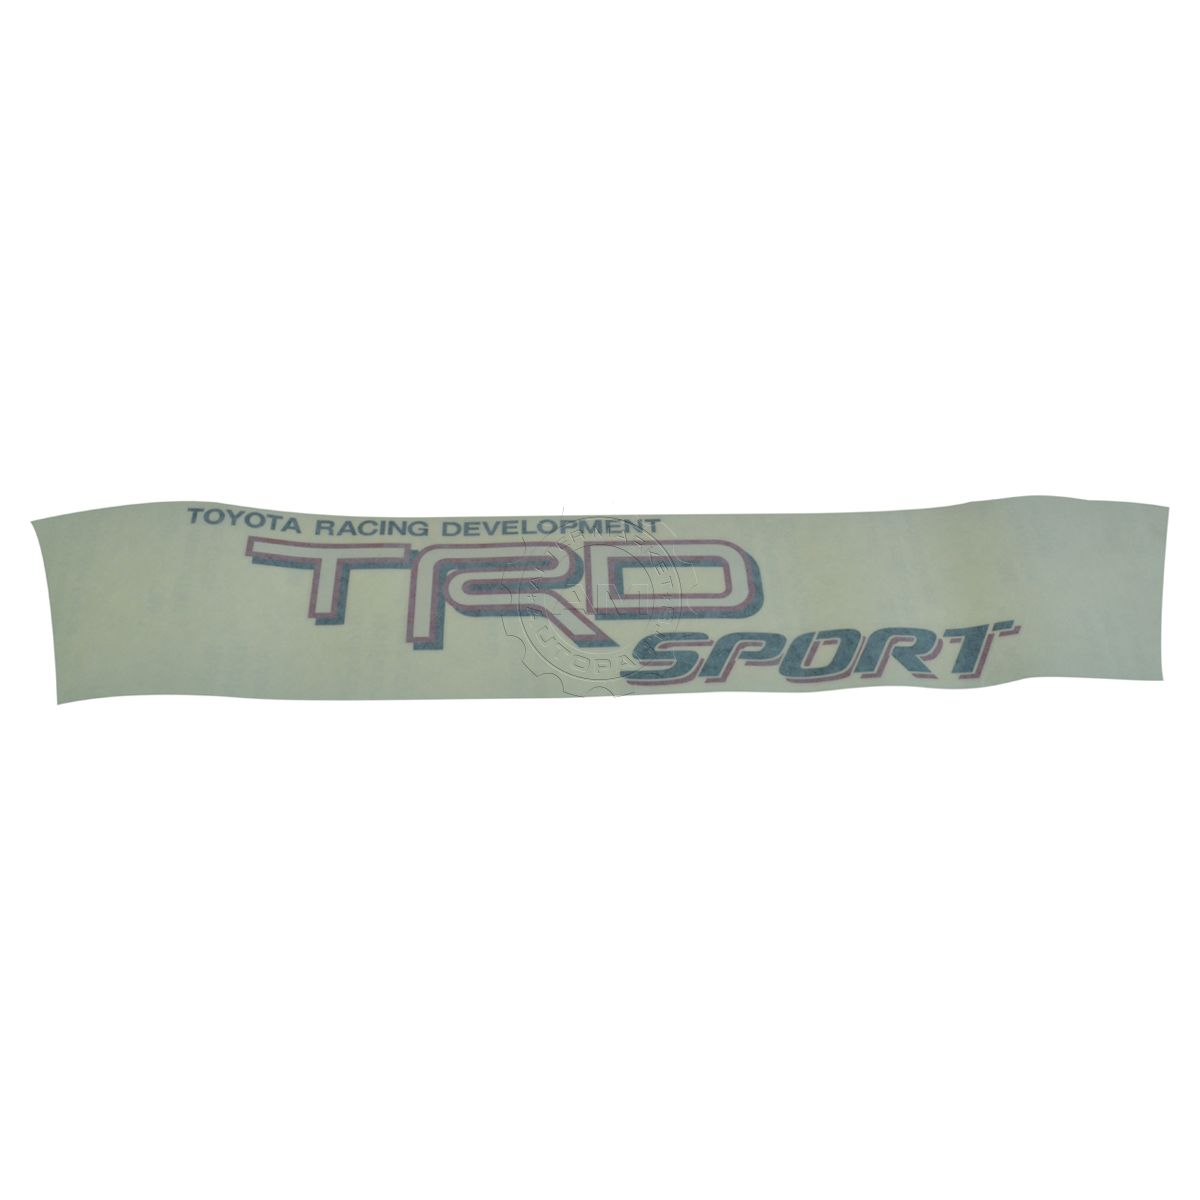 Oem bedside toyota racing development trd sport decal lh or rh for toyota tacoma